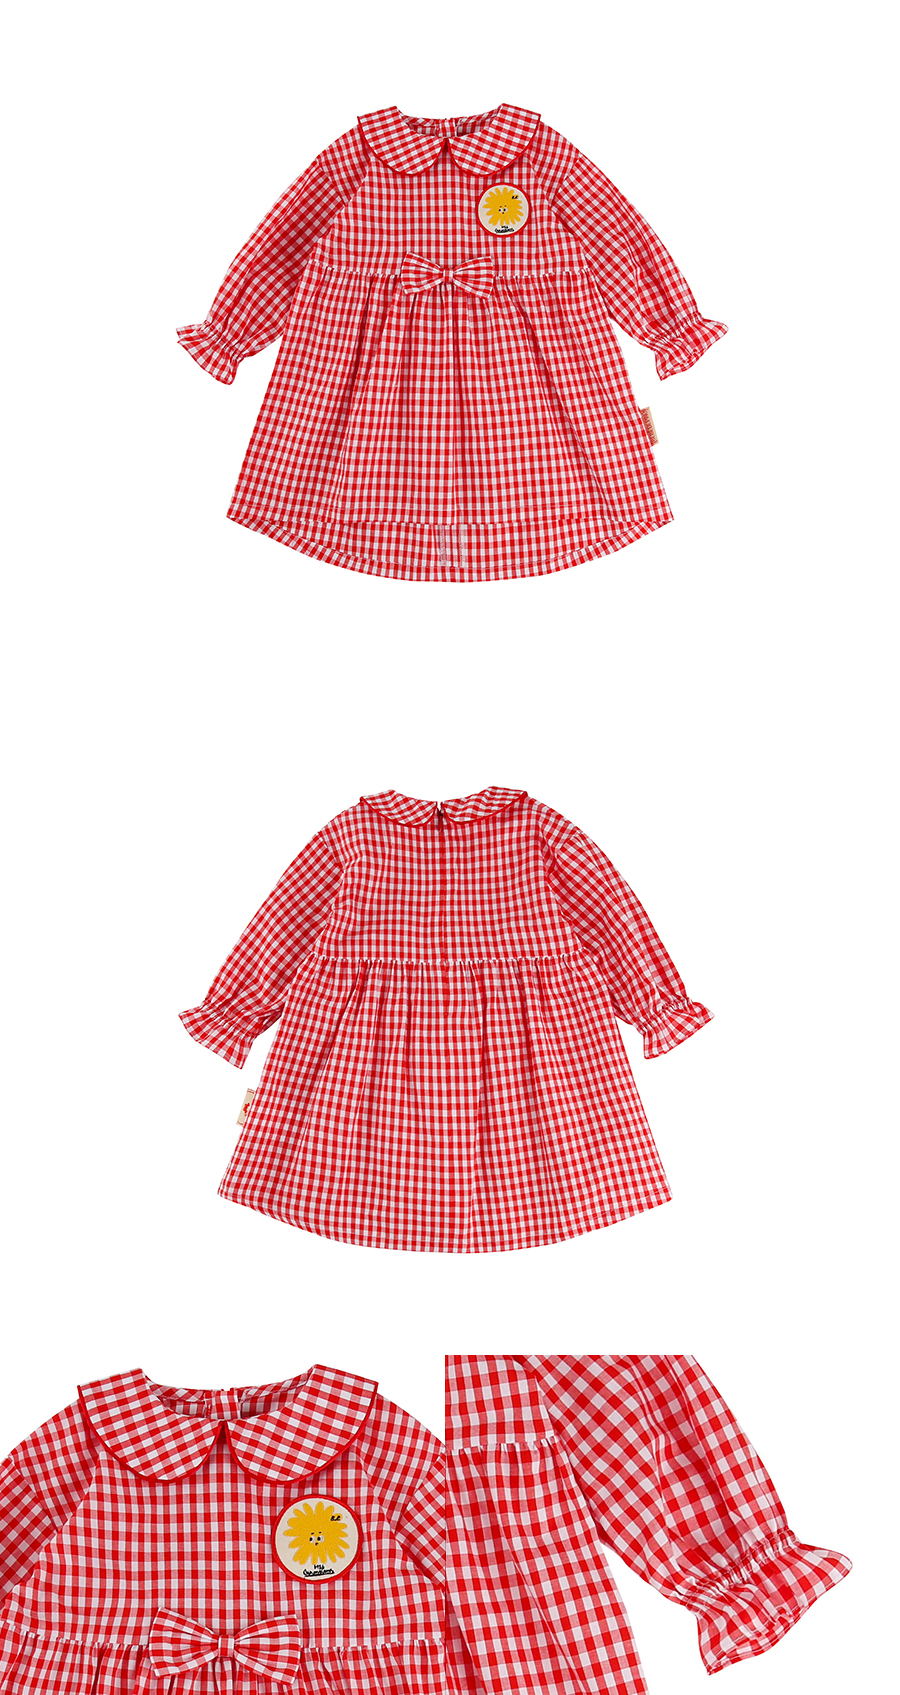 Pompom wappen baby scarlet gingham check dress 상세 이미지